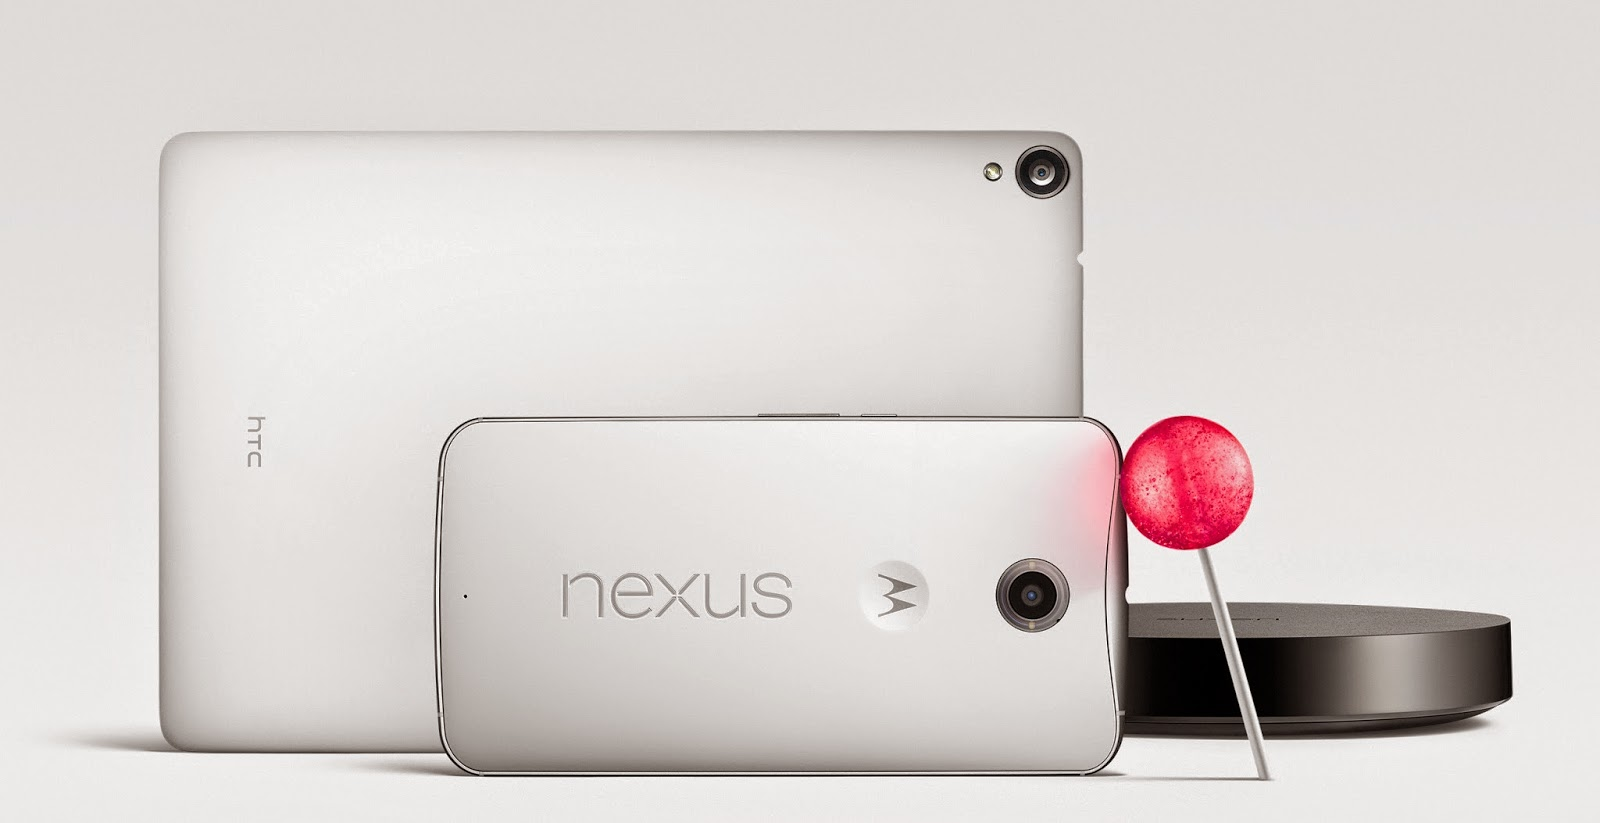 Nexus y Android 5.0 Lollypop